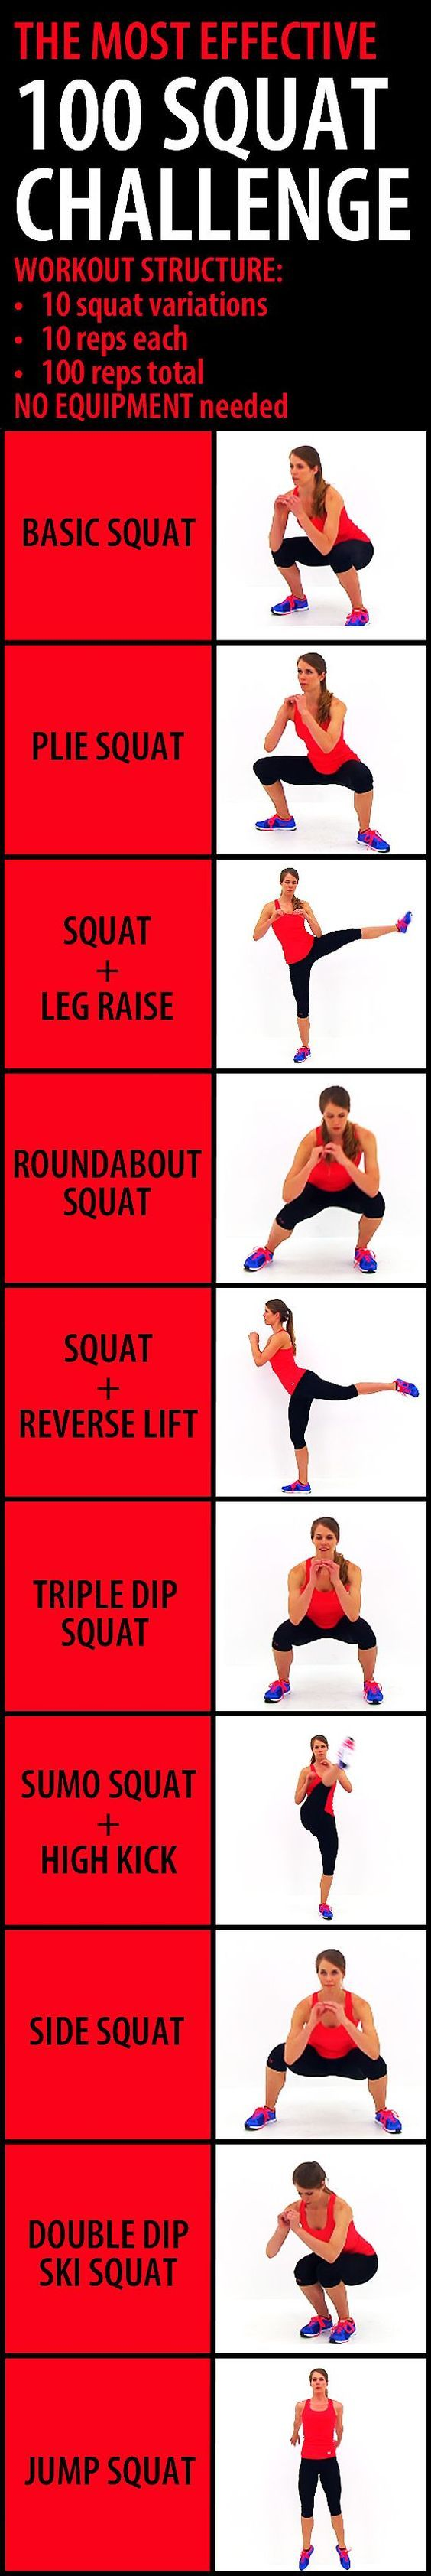 The most effective 100 SQUAT CHALLENGE. This challenge combines 10 different squat variations in order to target all of those glute muscles, from multiple angles, making it more effective than hundreds of repetitions of the same exact motion. For the best results do this routine up to 4-5 times a week. You will start to see small changes in your body in as little as a week or two, but more noticeable changes will occur in 3-4 weeks. #gluteworkout #workoutforwomen #buttworkout #butt #booty: